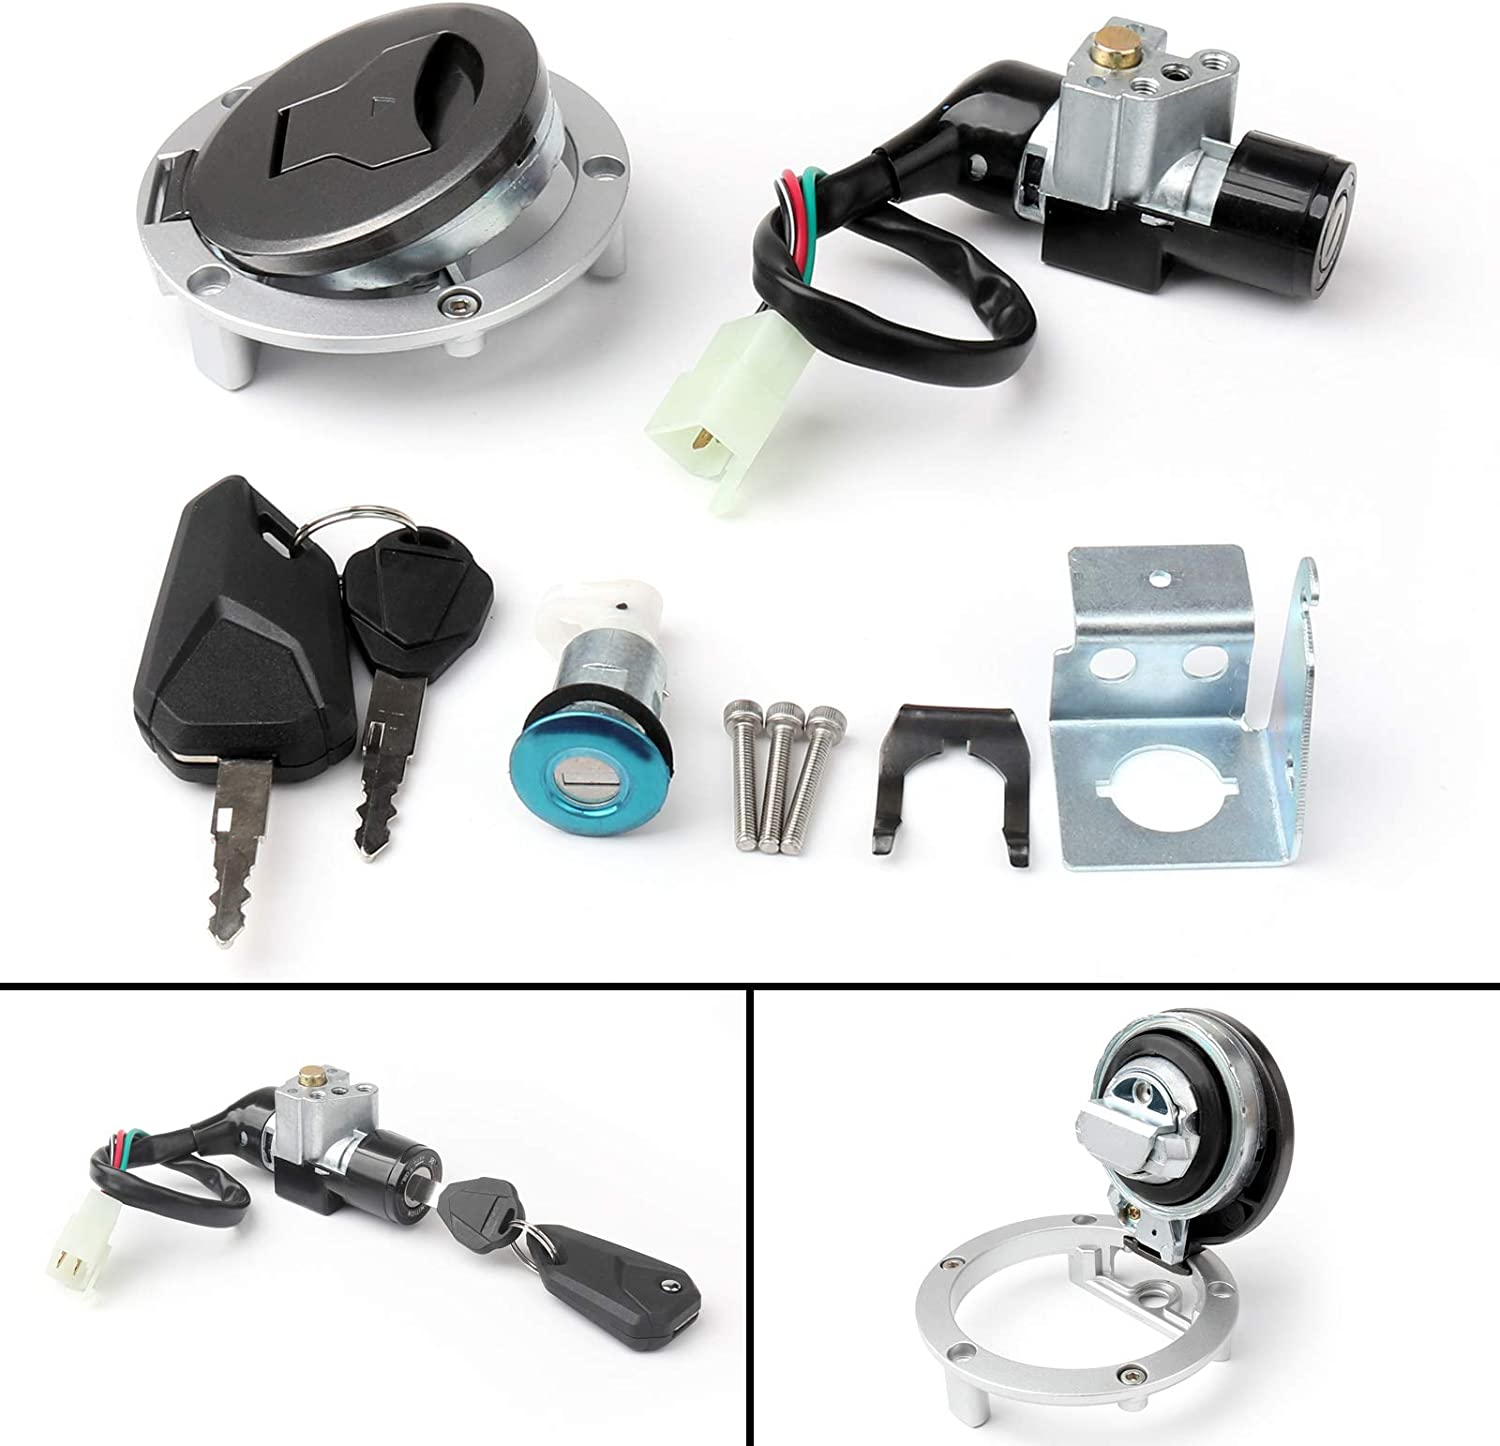 Areyourshop Ignition Switch Fuel Gas Cap Cover Key Lock Set For GROM MSX125SF 2016